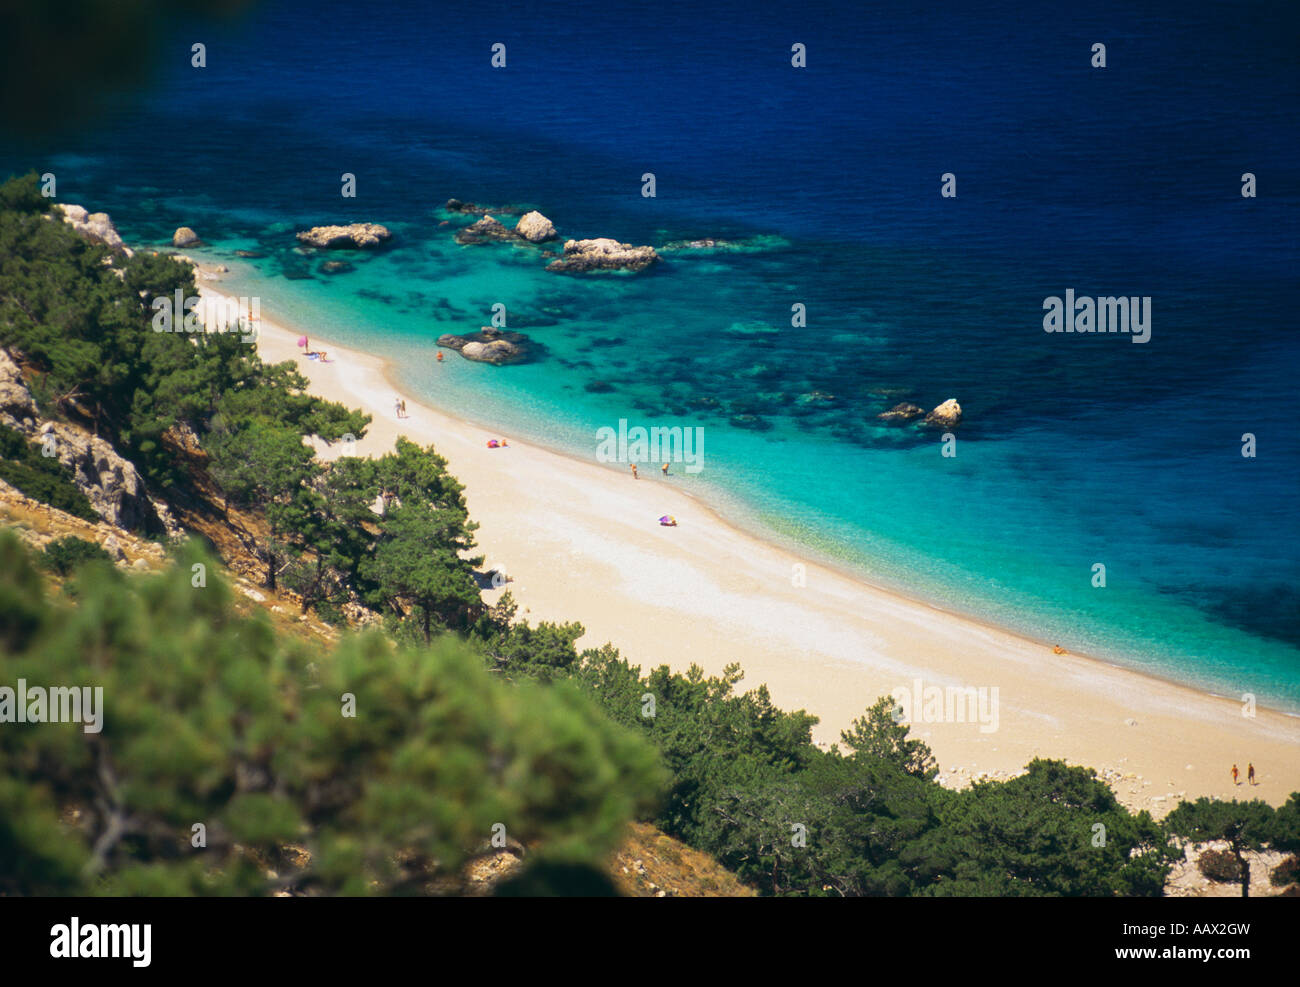 Beach on the Island of Karpathos Dodecanese Islands Greece Stock Photo